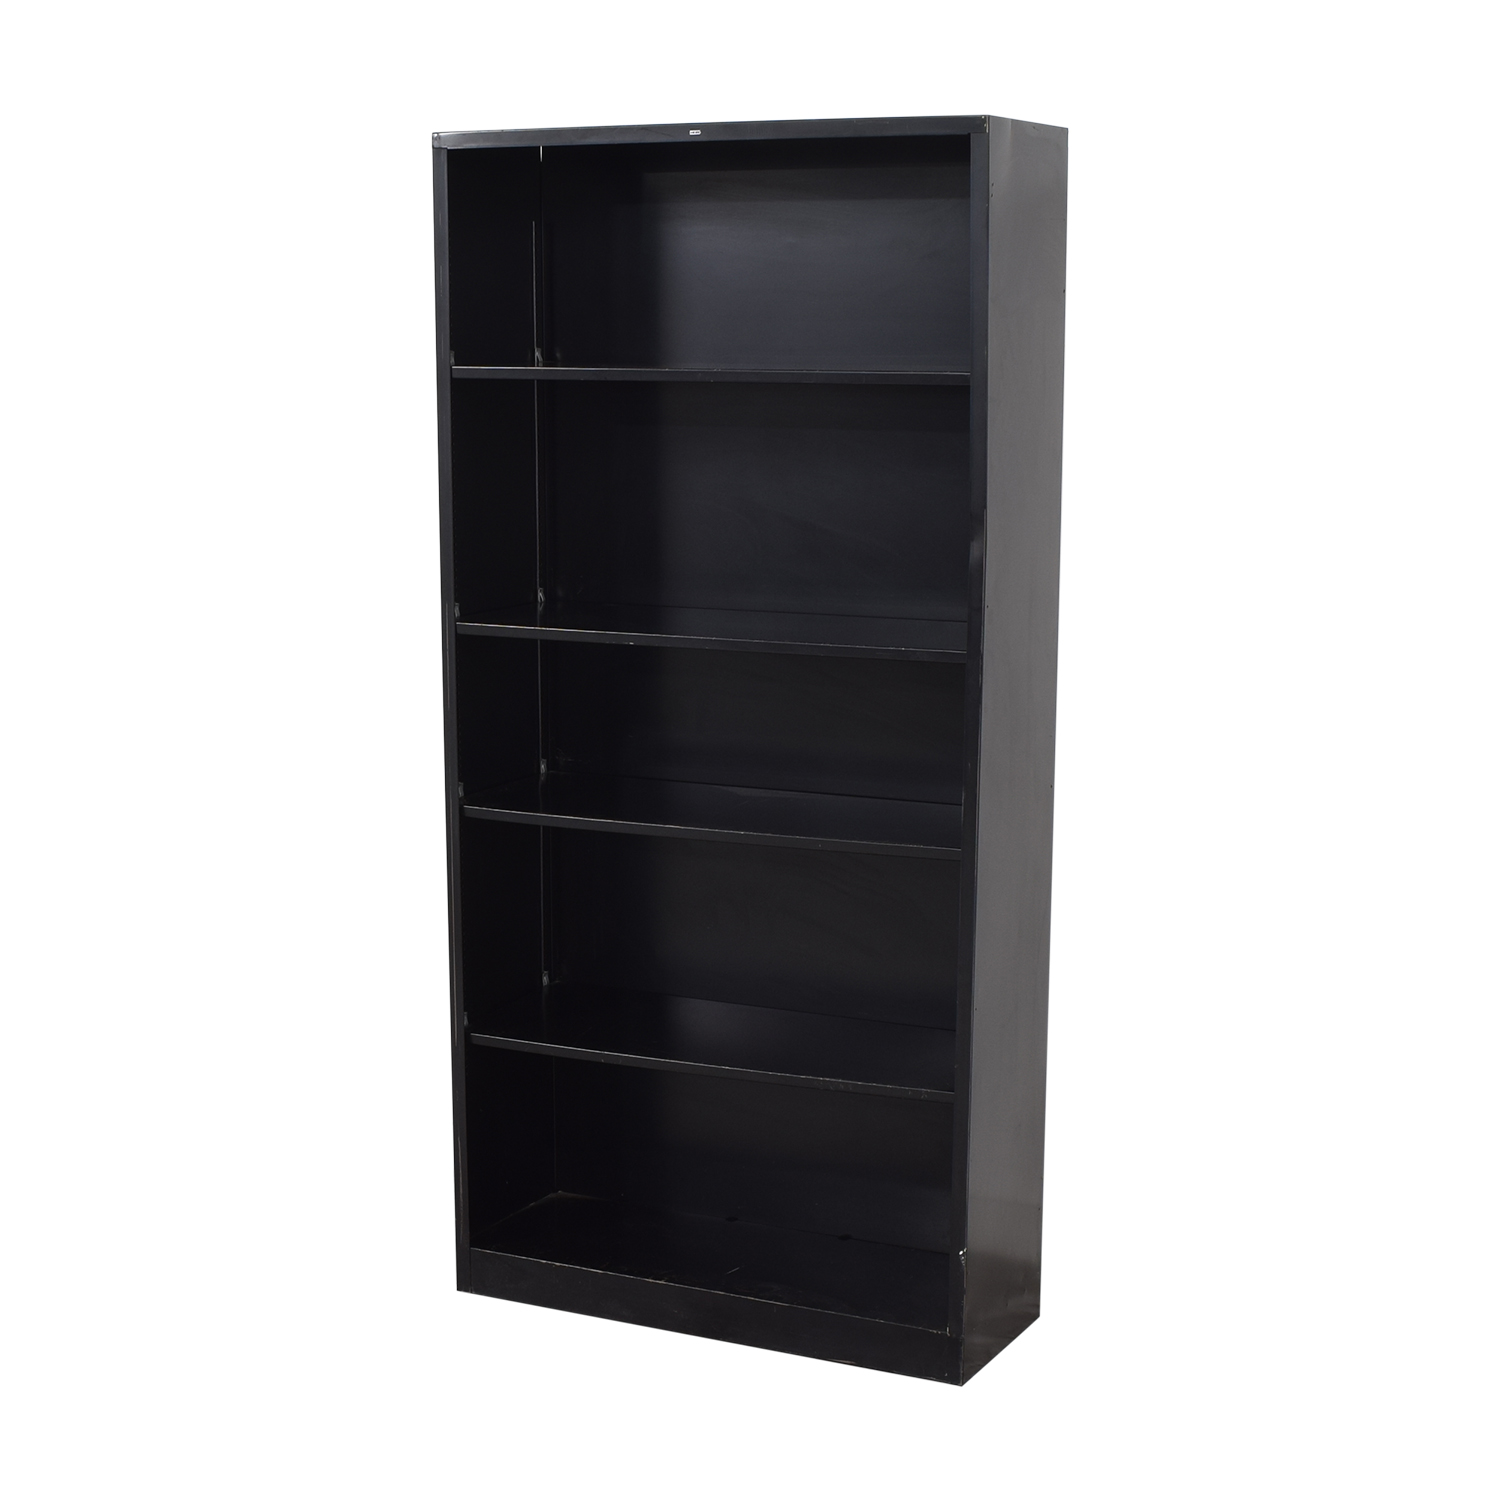 Hon HON Brigade 5-Shelf Bookcase price